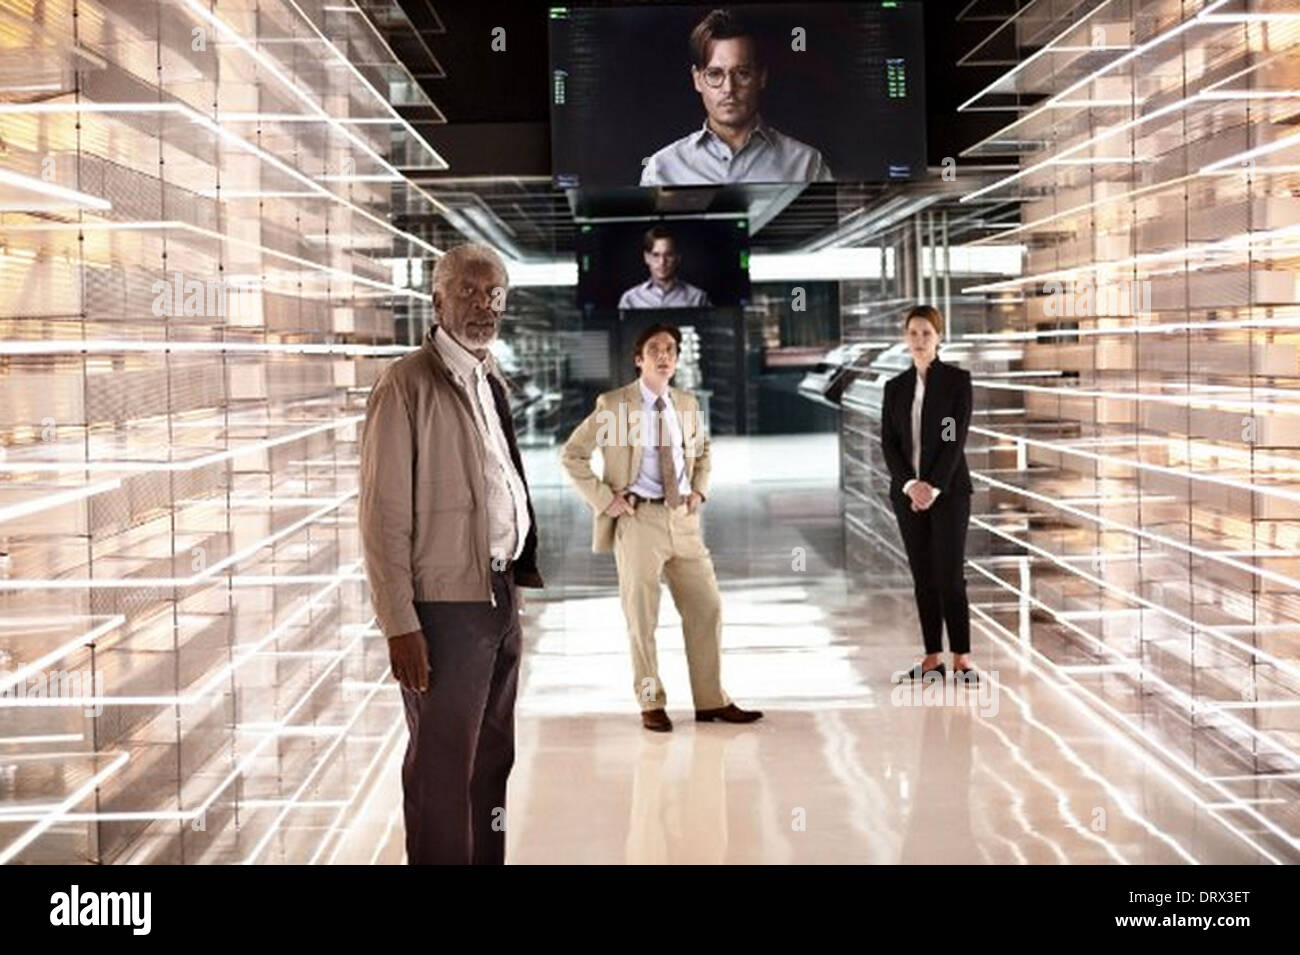 TRANSCENDENCE 2014 Alcon Entertainment film with from left: Morgan Freeman, Cillan Murphy, Johnny Depp (glasses) and Rebecca Hal - Stock Image